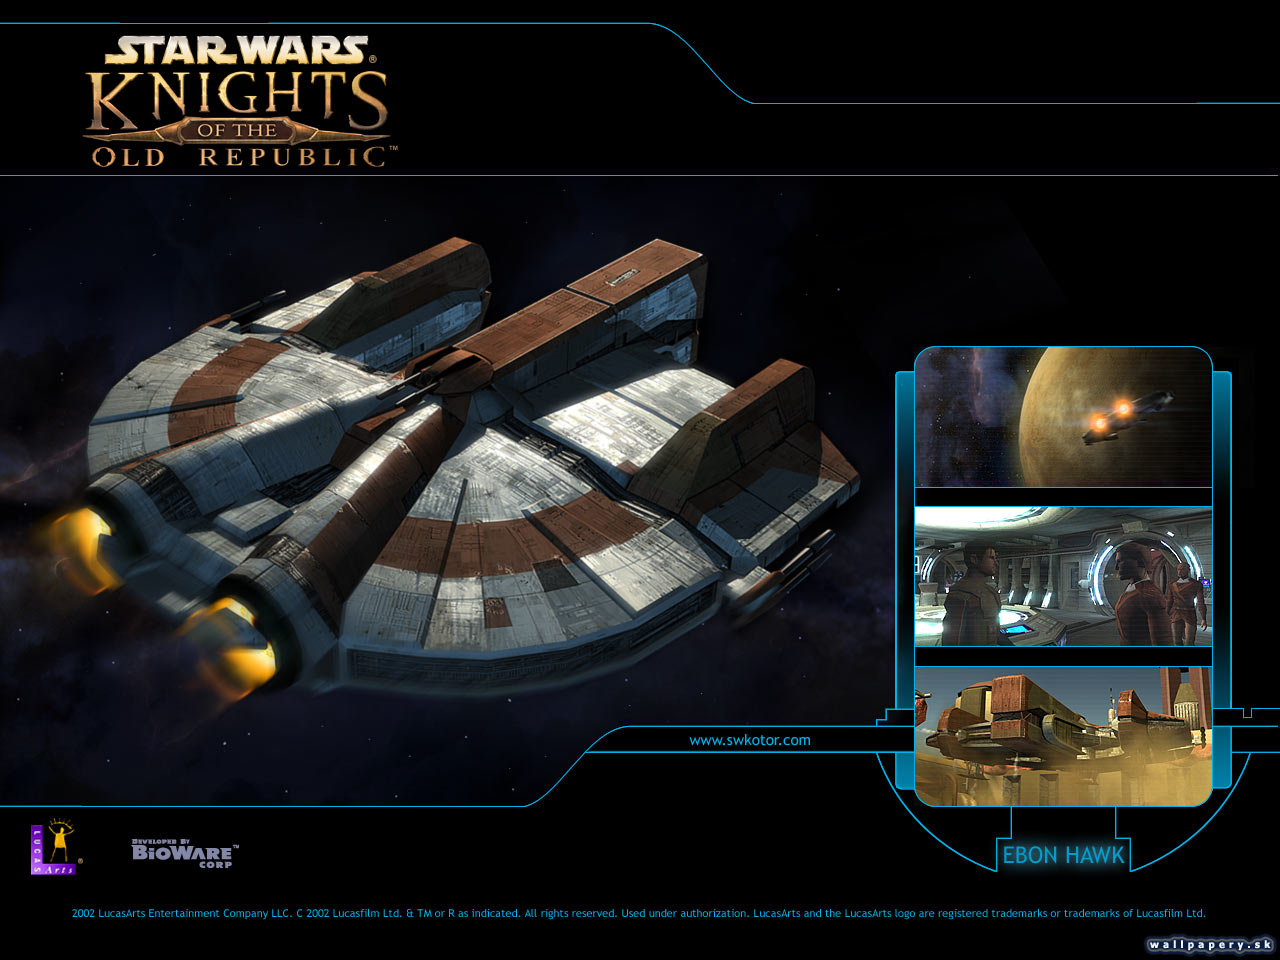 Star wars: knights of the old republic - wallpaper 8